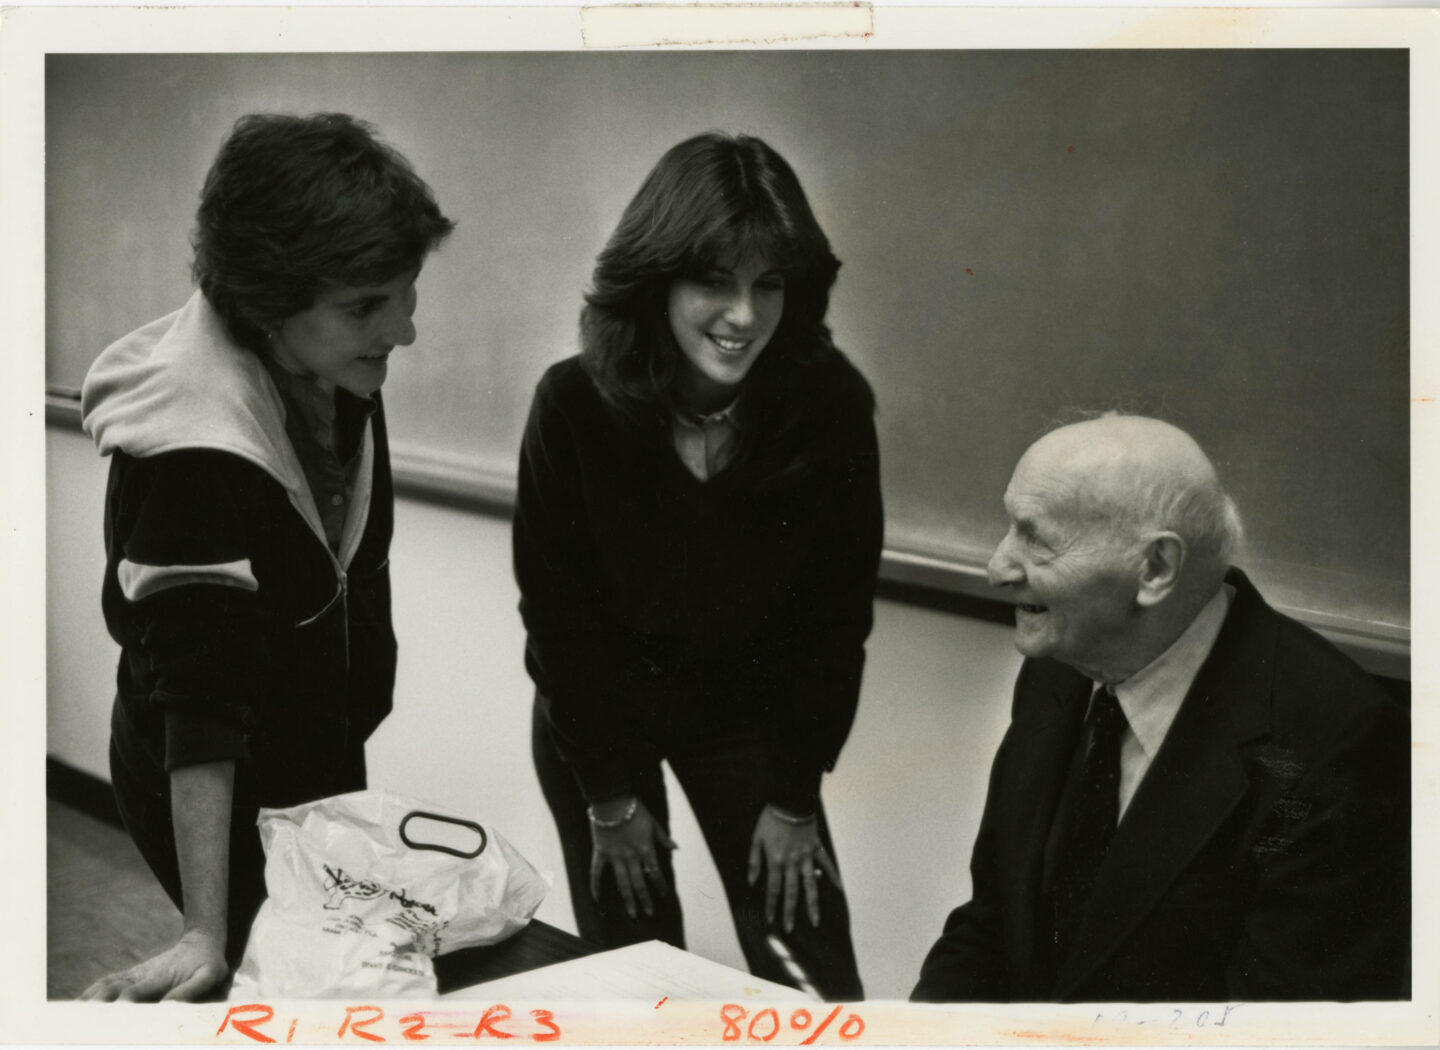 """<p>Isaac Bashevis Singer and students (<a href=""""http://merrick.library.miami.edu/cdm/singleitem/collection/umpeople/id/94/rec/1"""">University Archives, University of Miami Libraries</a>)</p>"""